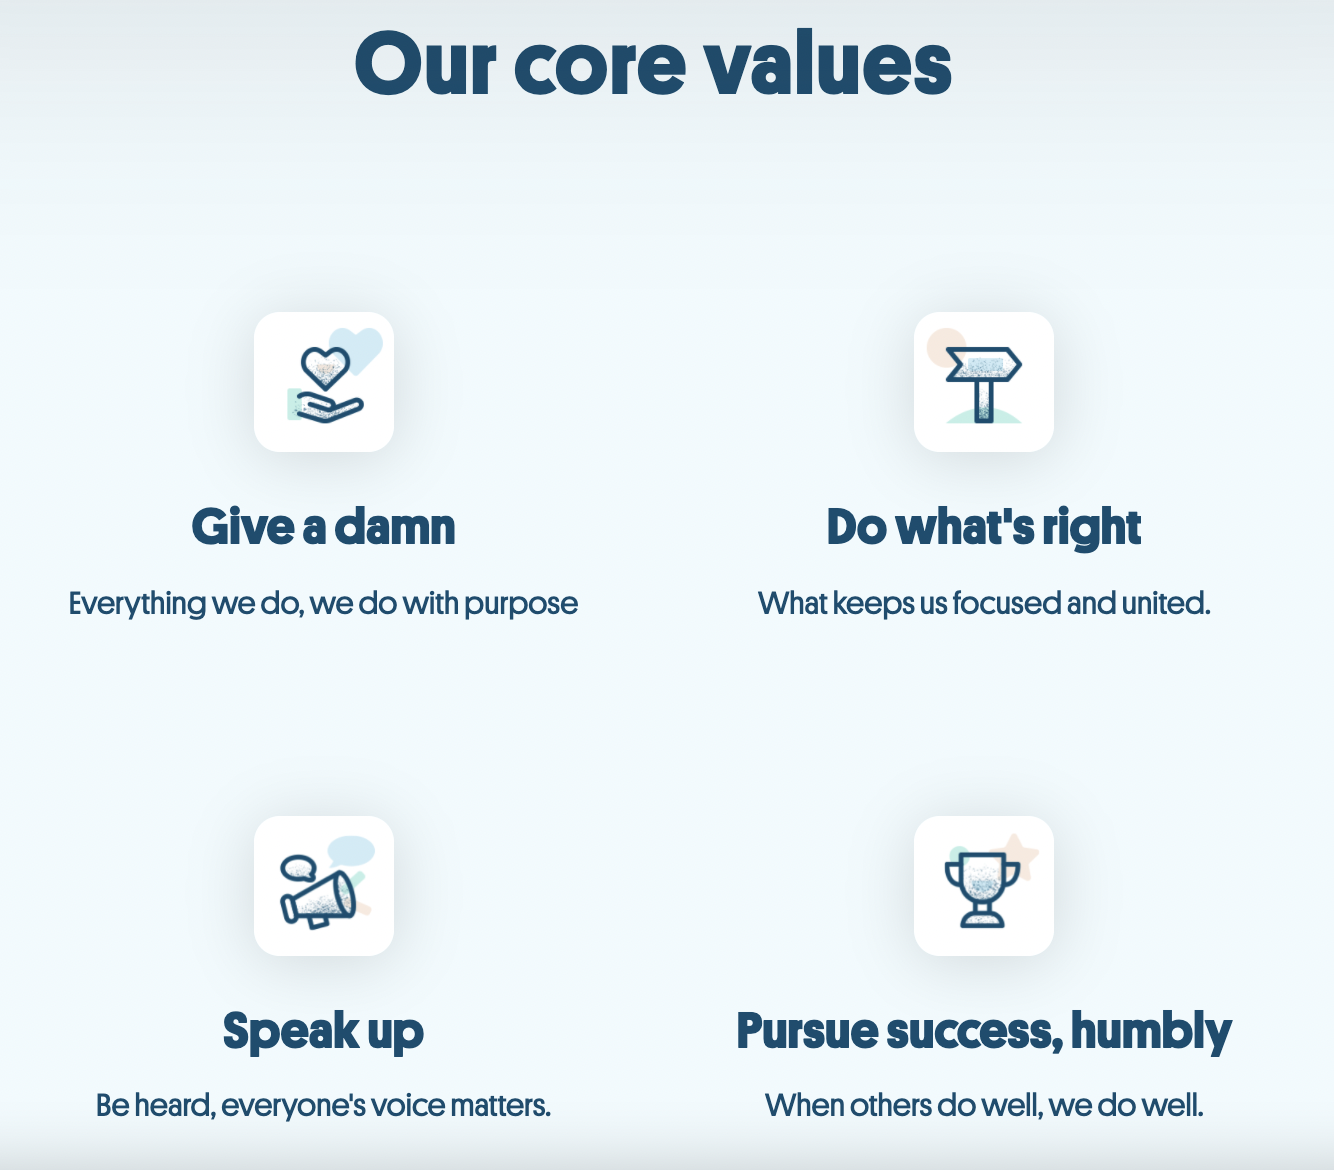 Example of using a Why Us page featuring core values for positioning in B2B SaaS